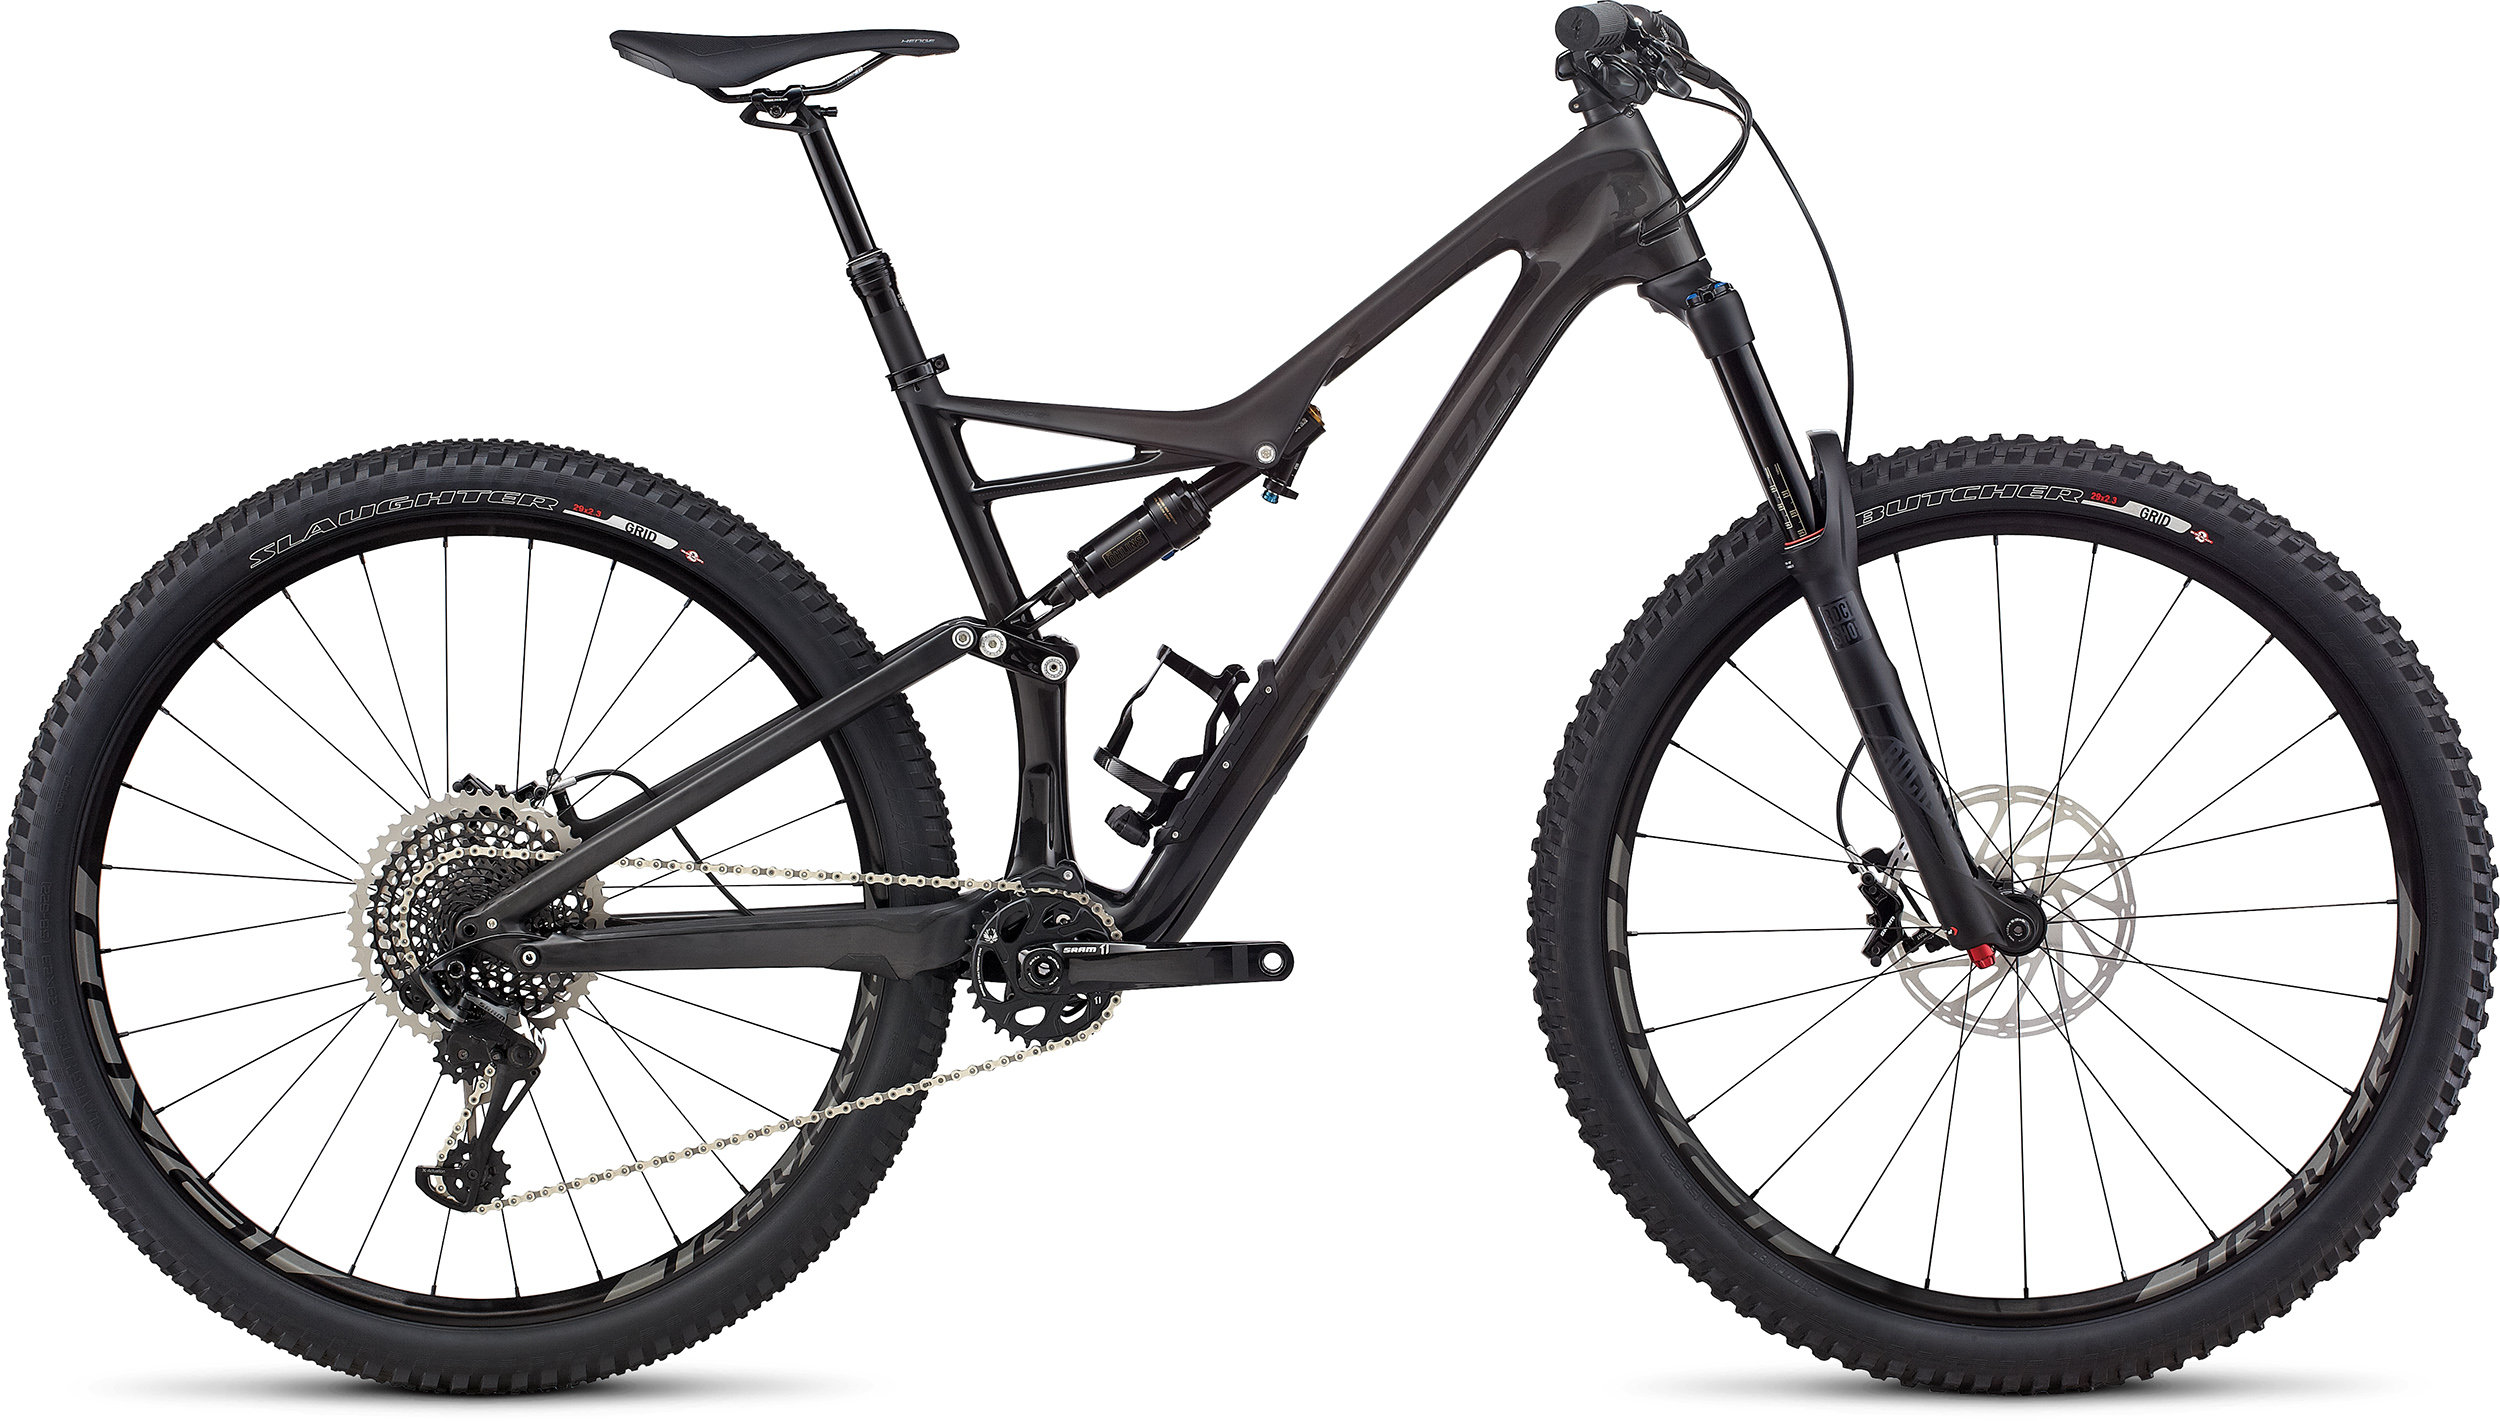 SPECIALIZED SJ FSR PRO CARBON 29 CARB/CARB S - Bikedreams & Dustbikes